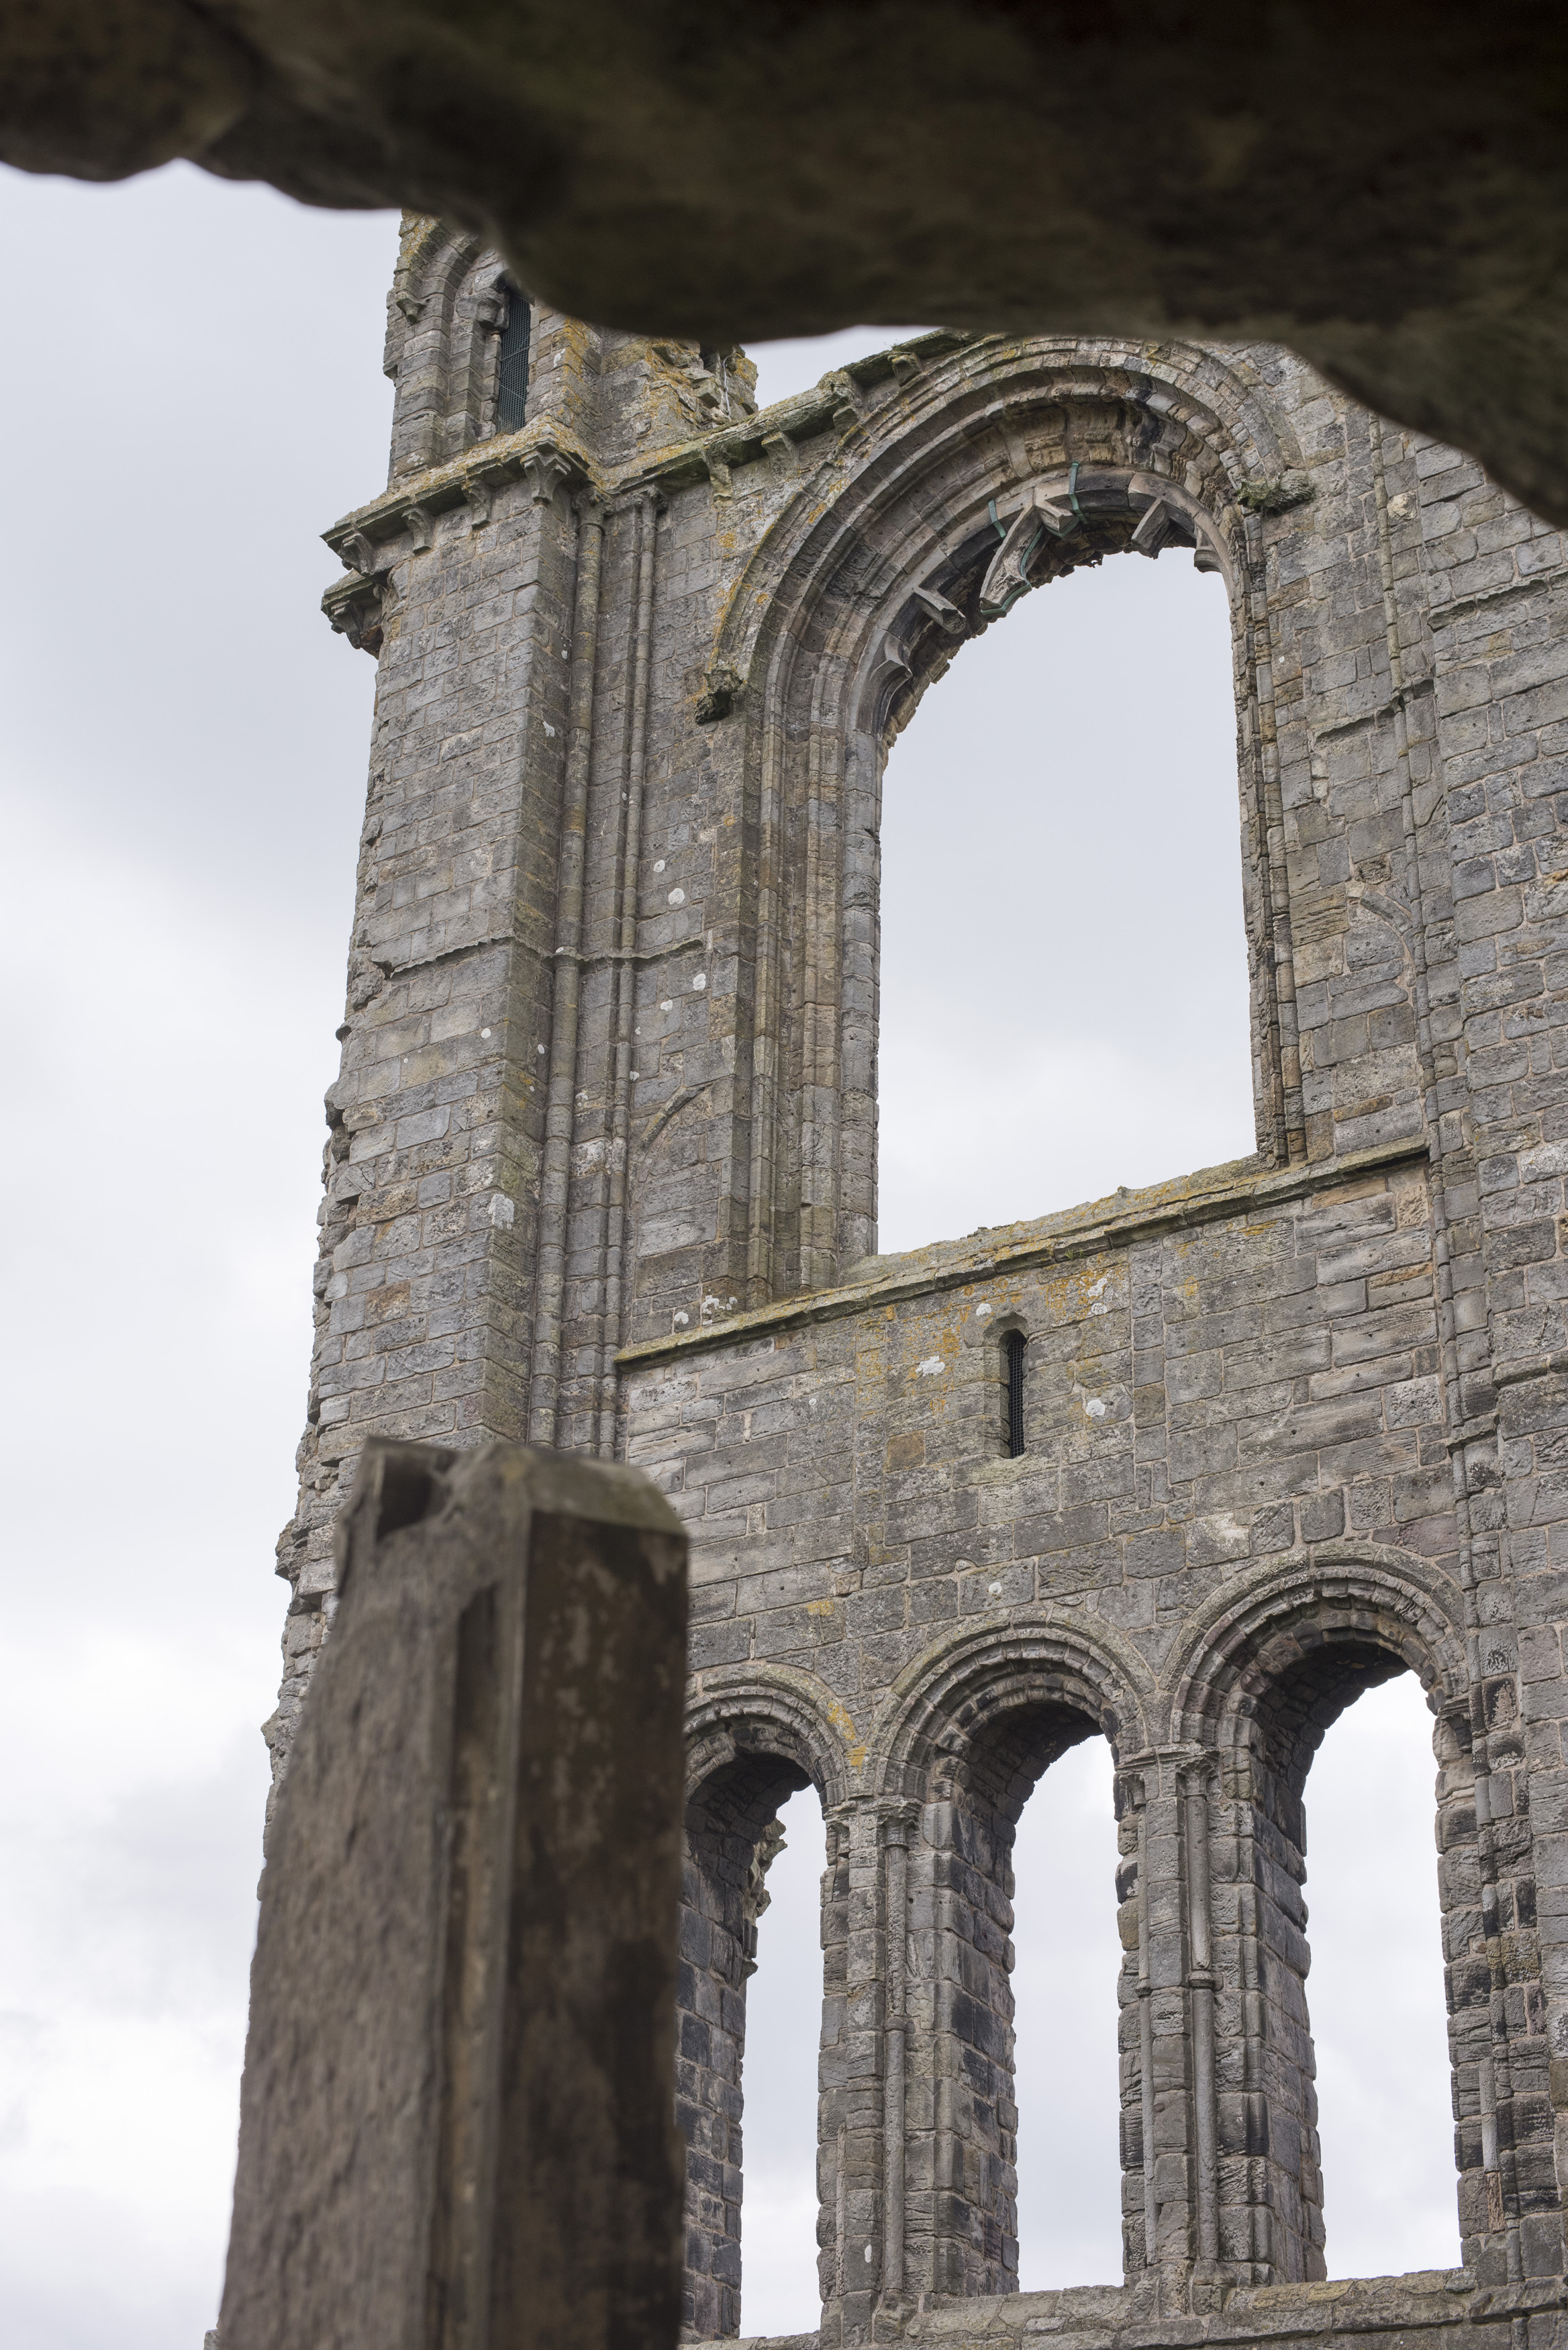 Detail of the St Andrews Cathedral ruins, Scotland showing the arched gothic windows in an ancient stone wall with view through to a hazy sky